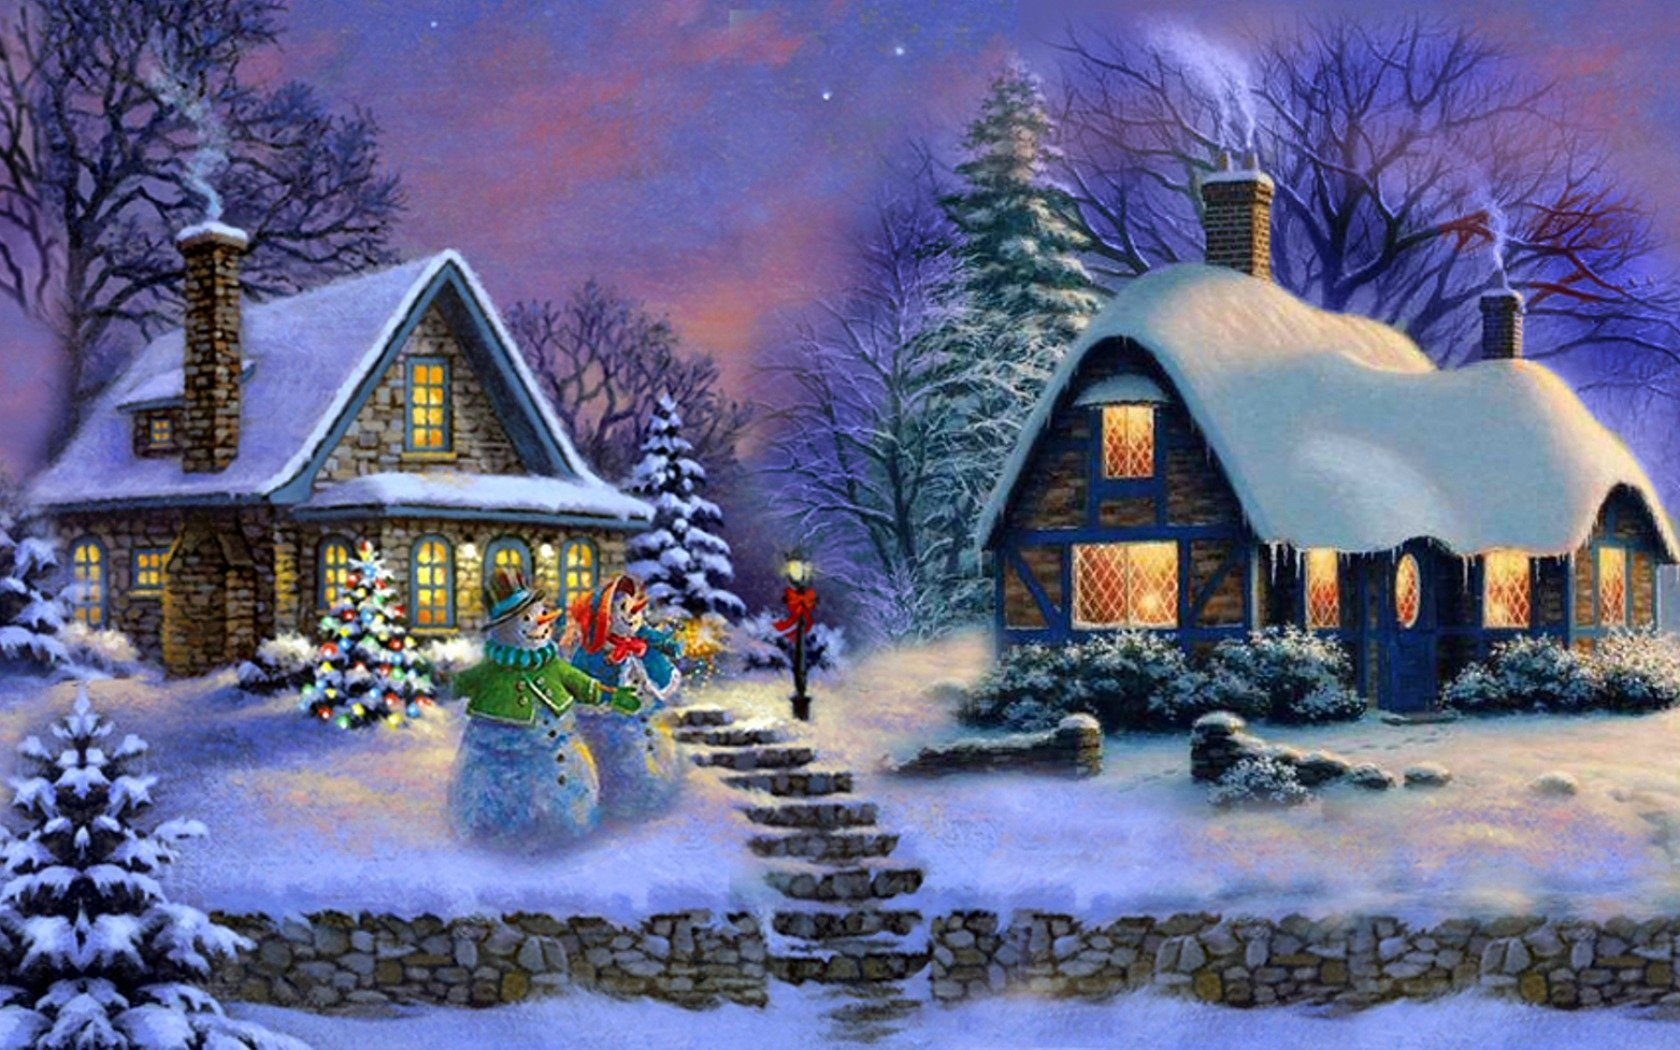 Artistic Painting Artistic Christmas House Snowman Tree